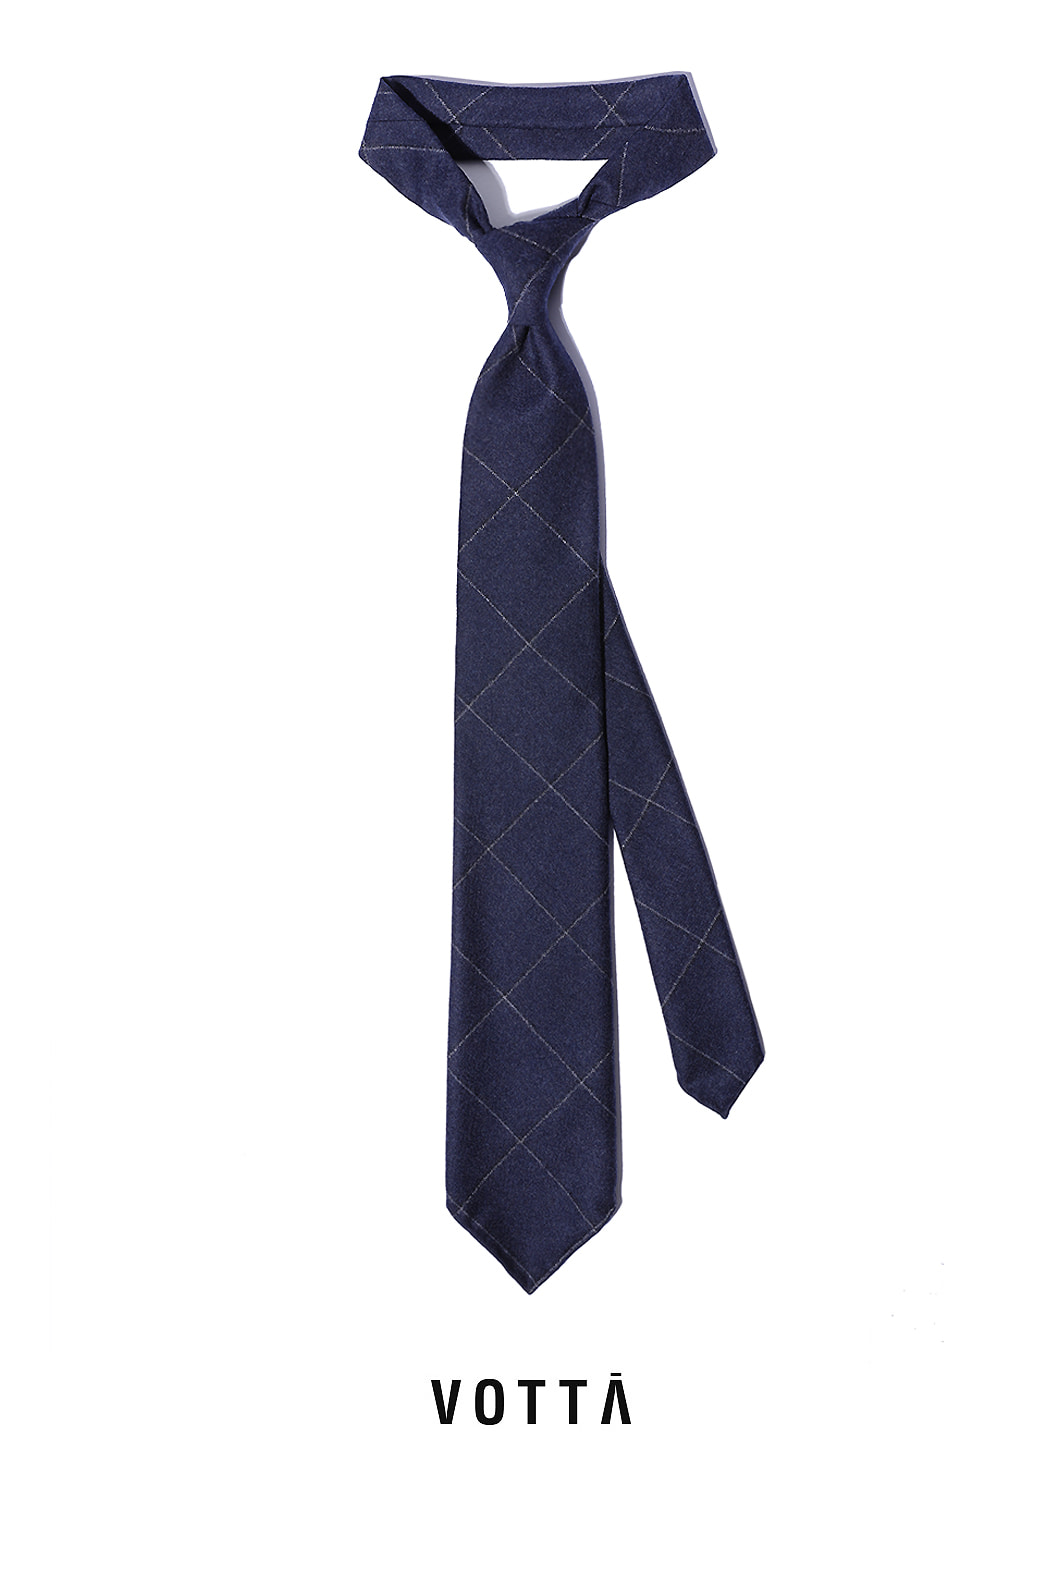 CANONICO WINDOW SPODERATO TIE-NAVY BLUEHAND MADE TIE[wool 100%]